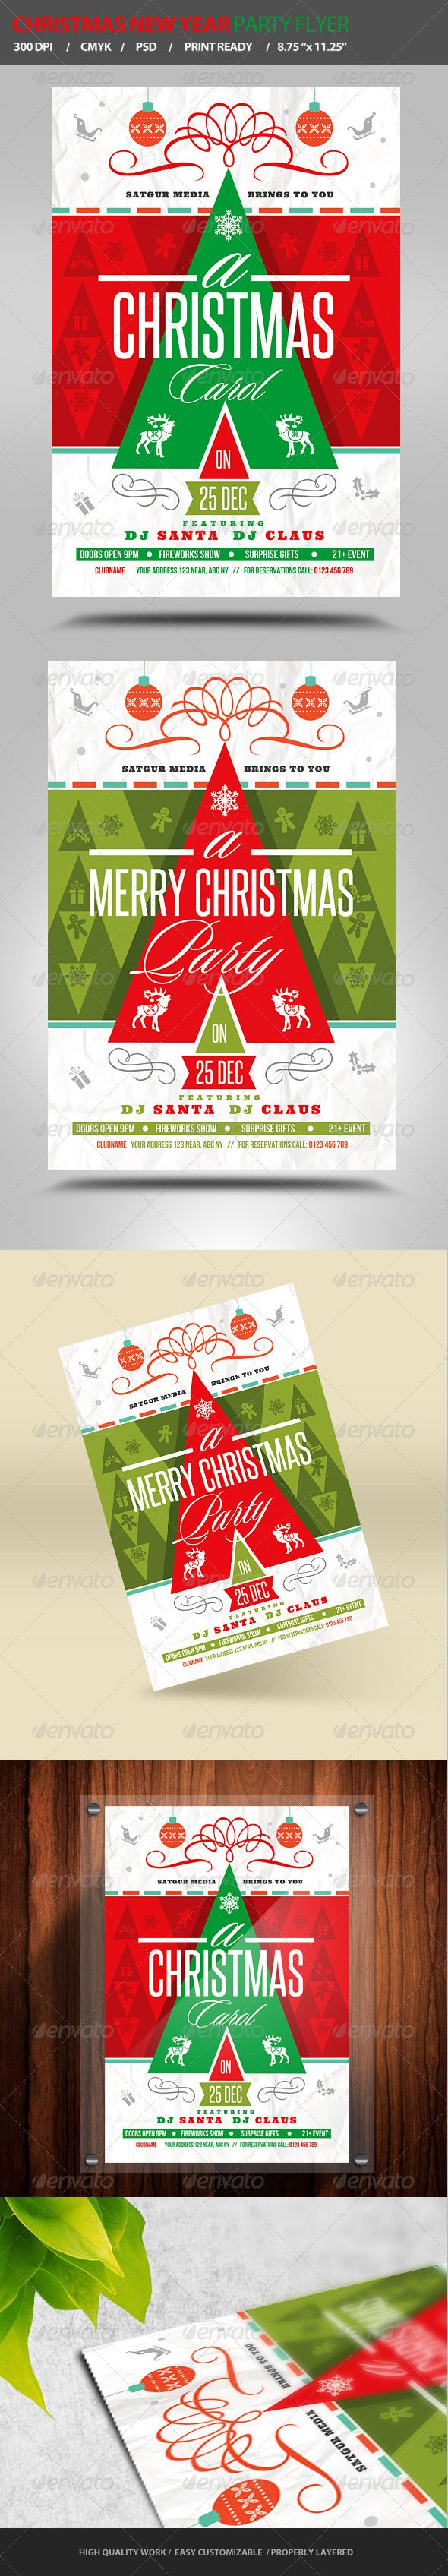 1000+ images about Christmas design on Pinterest | Flyers, Christmas ...